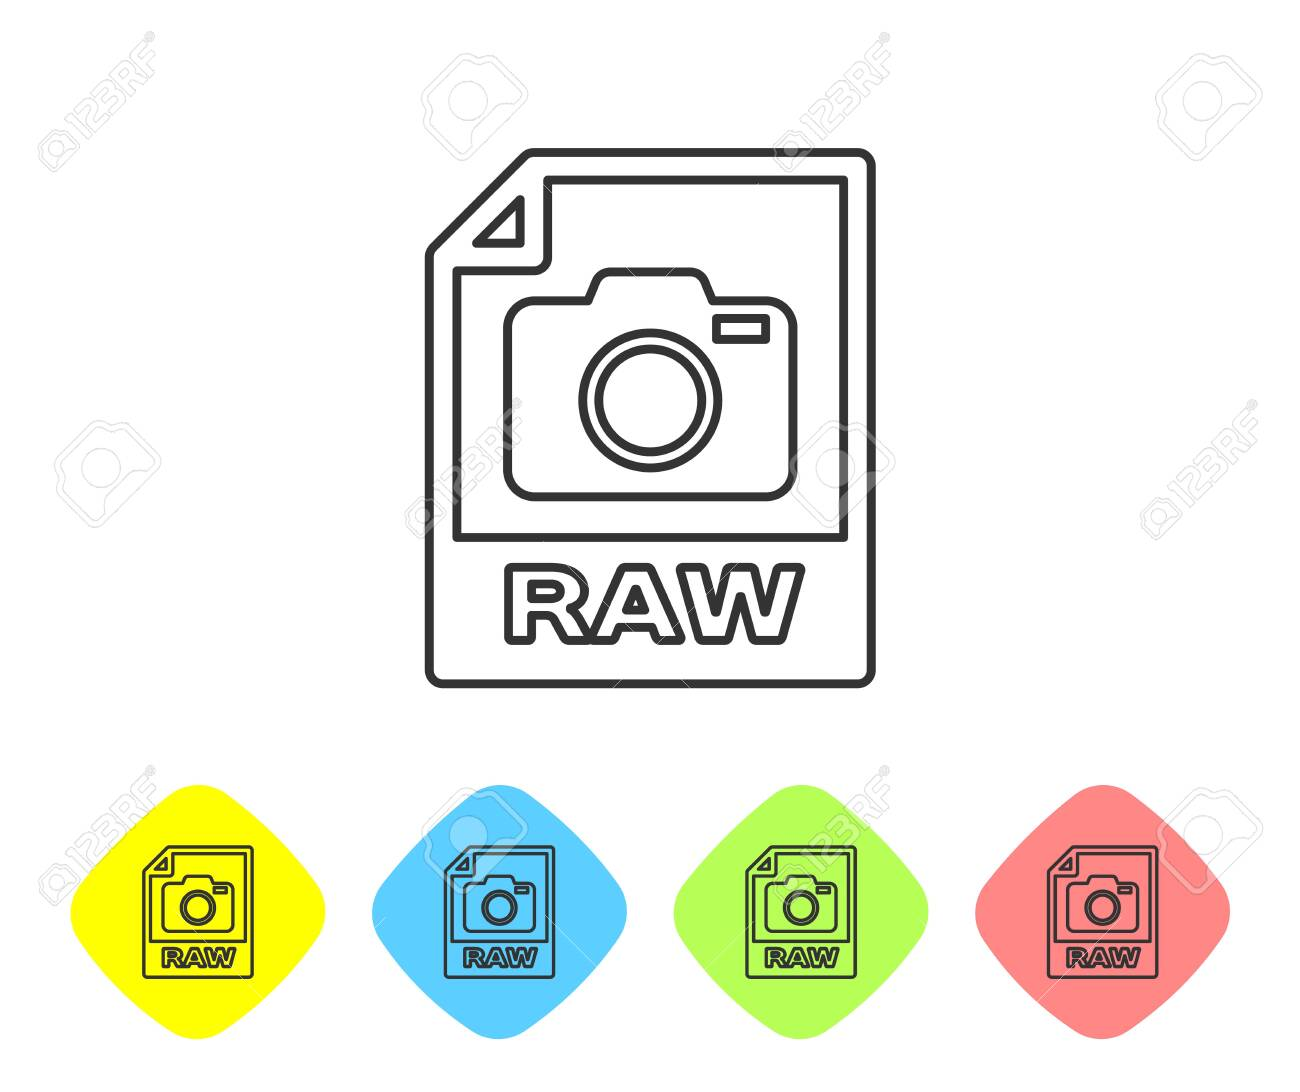 Grey RAW file document icon  Download raw button line icon isolated